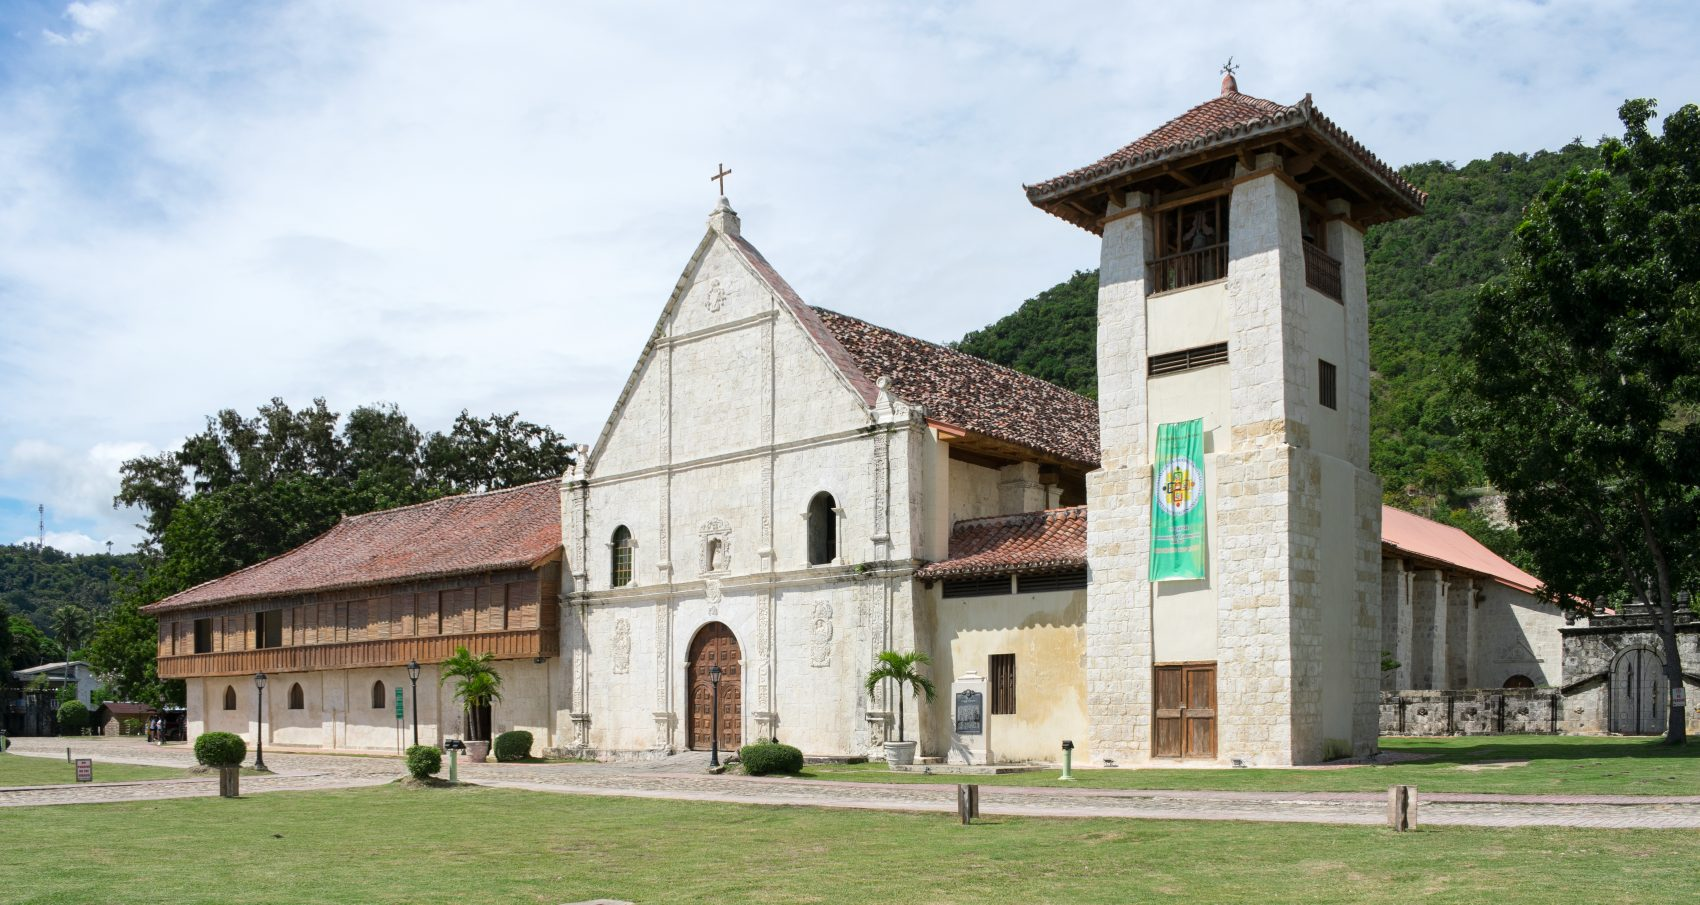 Patrocinio de Maria Parish Church